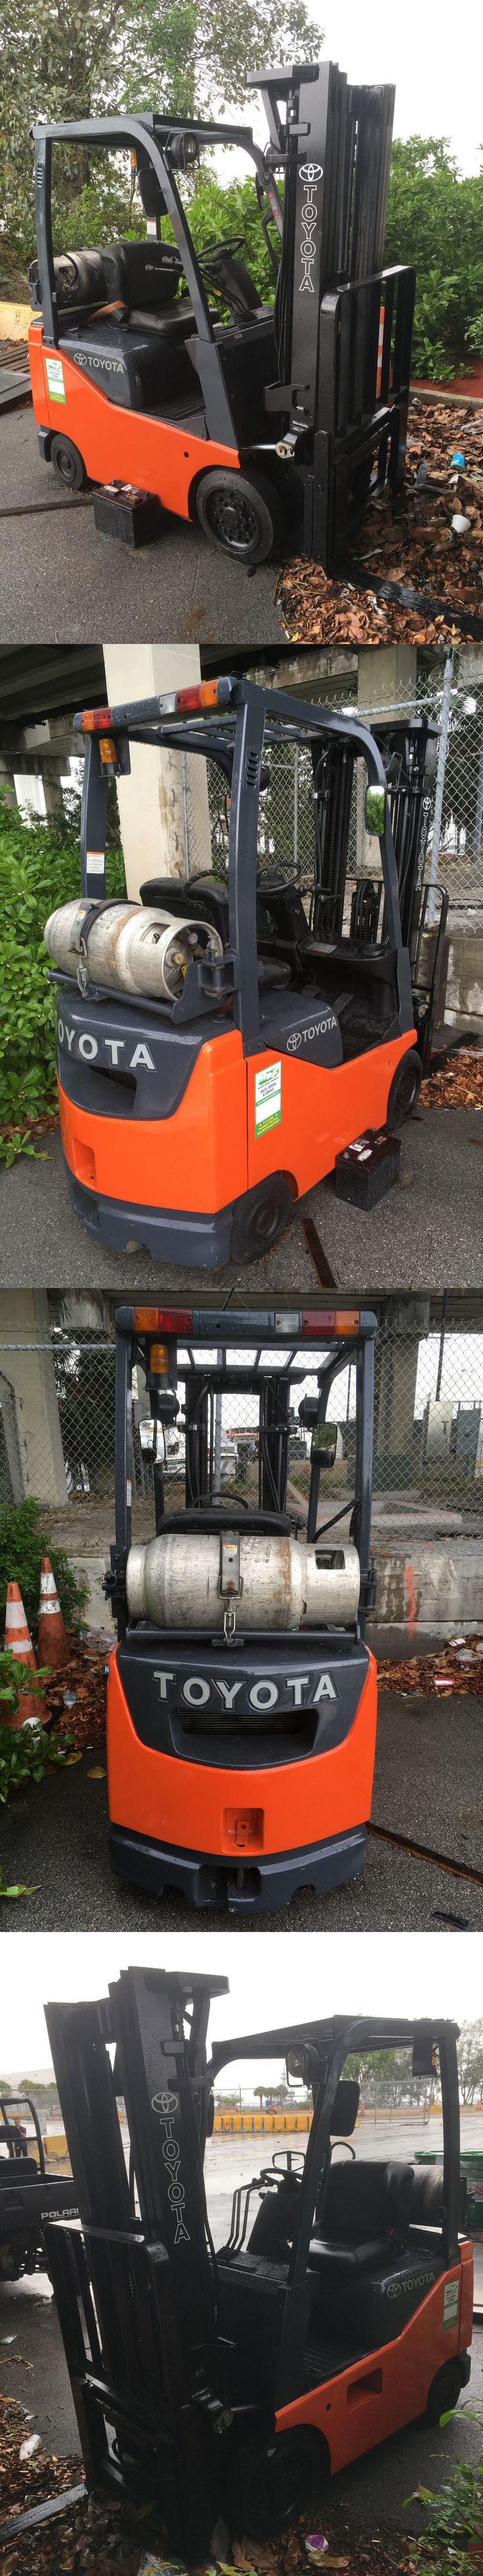 heavy equipment: 2016 Toyota Forklift 8Fgcu15 -> BUY IT NOW ONLY: $10900 on eBay!